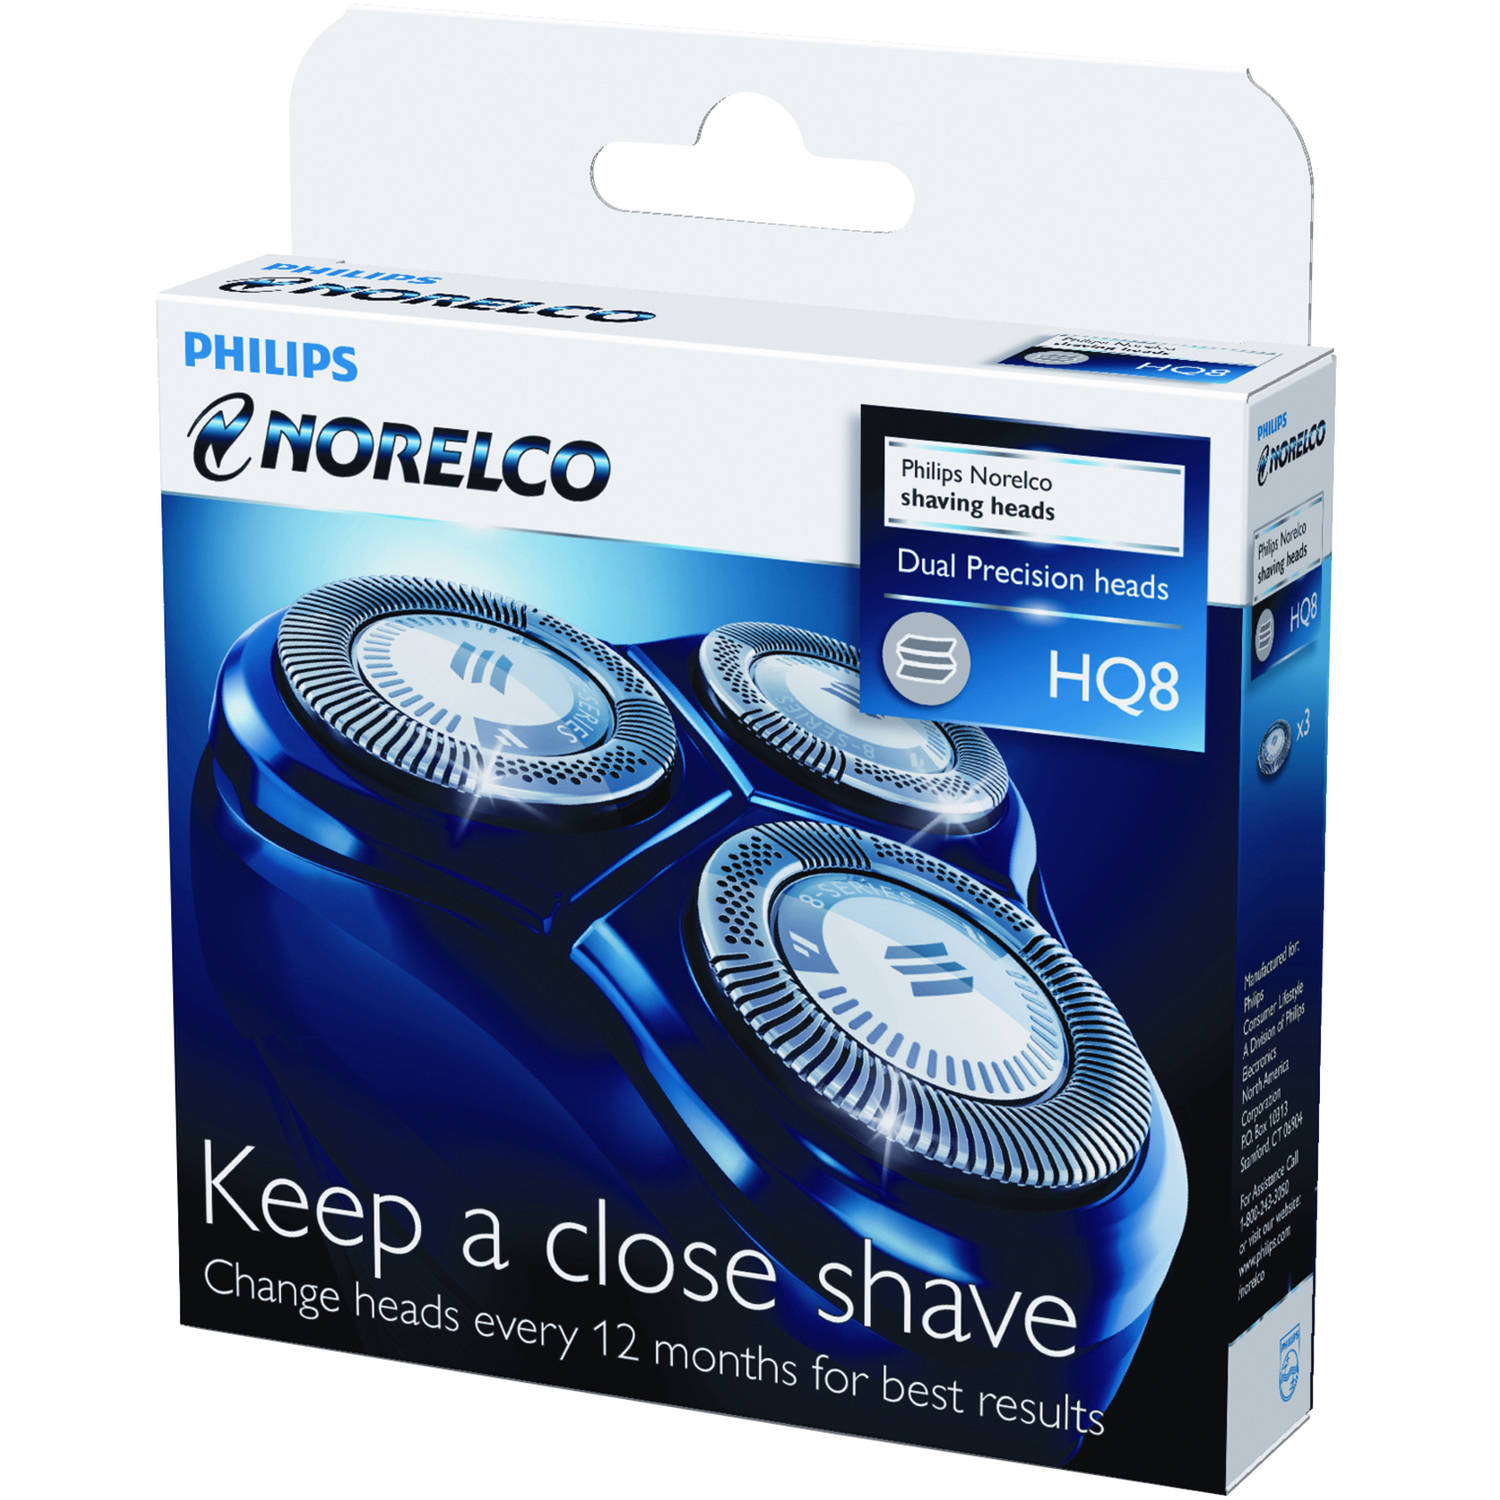 Philips Norelco replacement Shaving Heads, HQ8/52